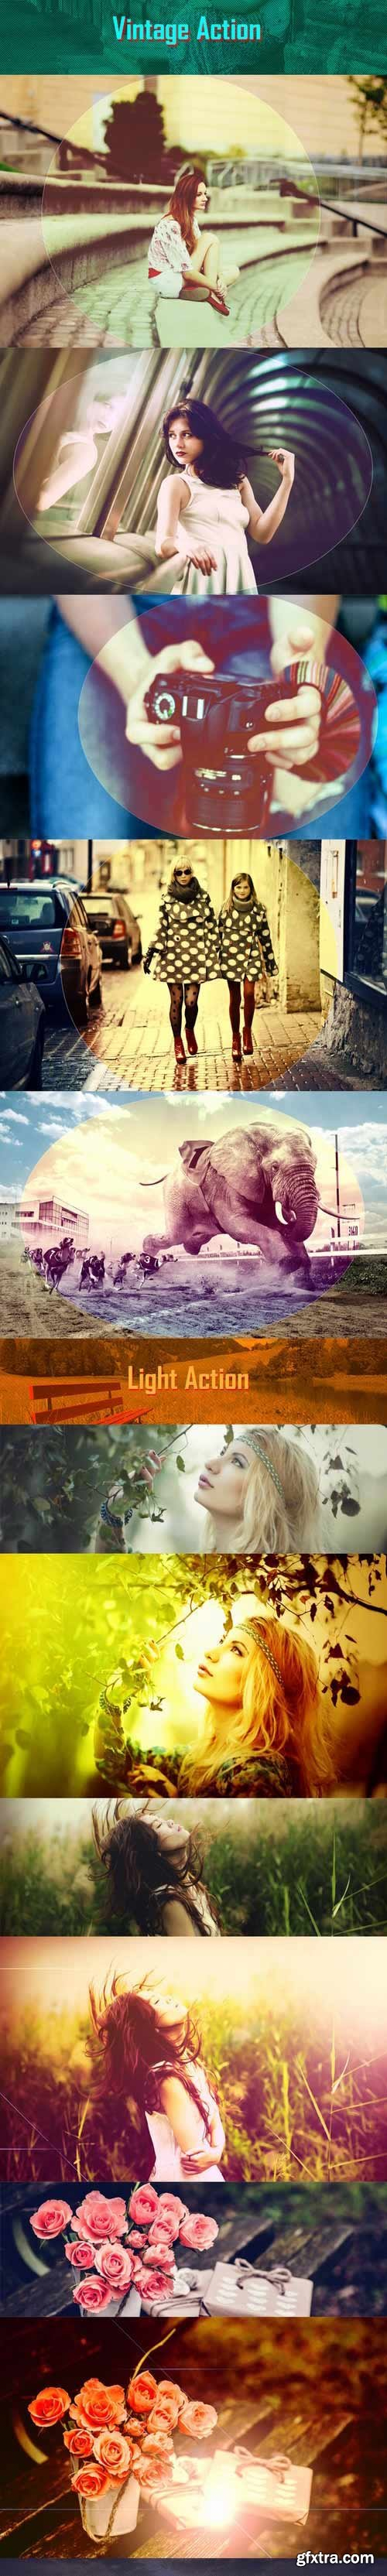 GraphicRiver - Mixed Photo Actions 9373116